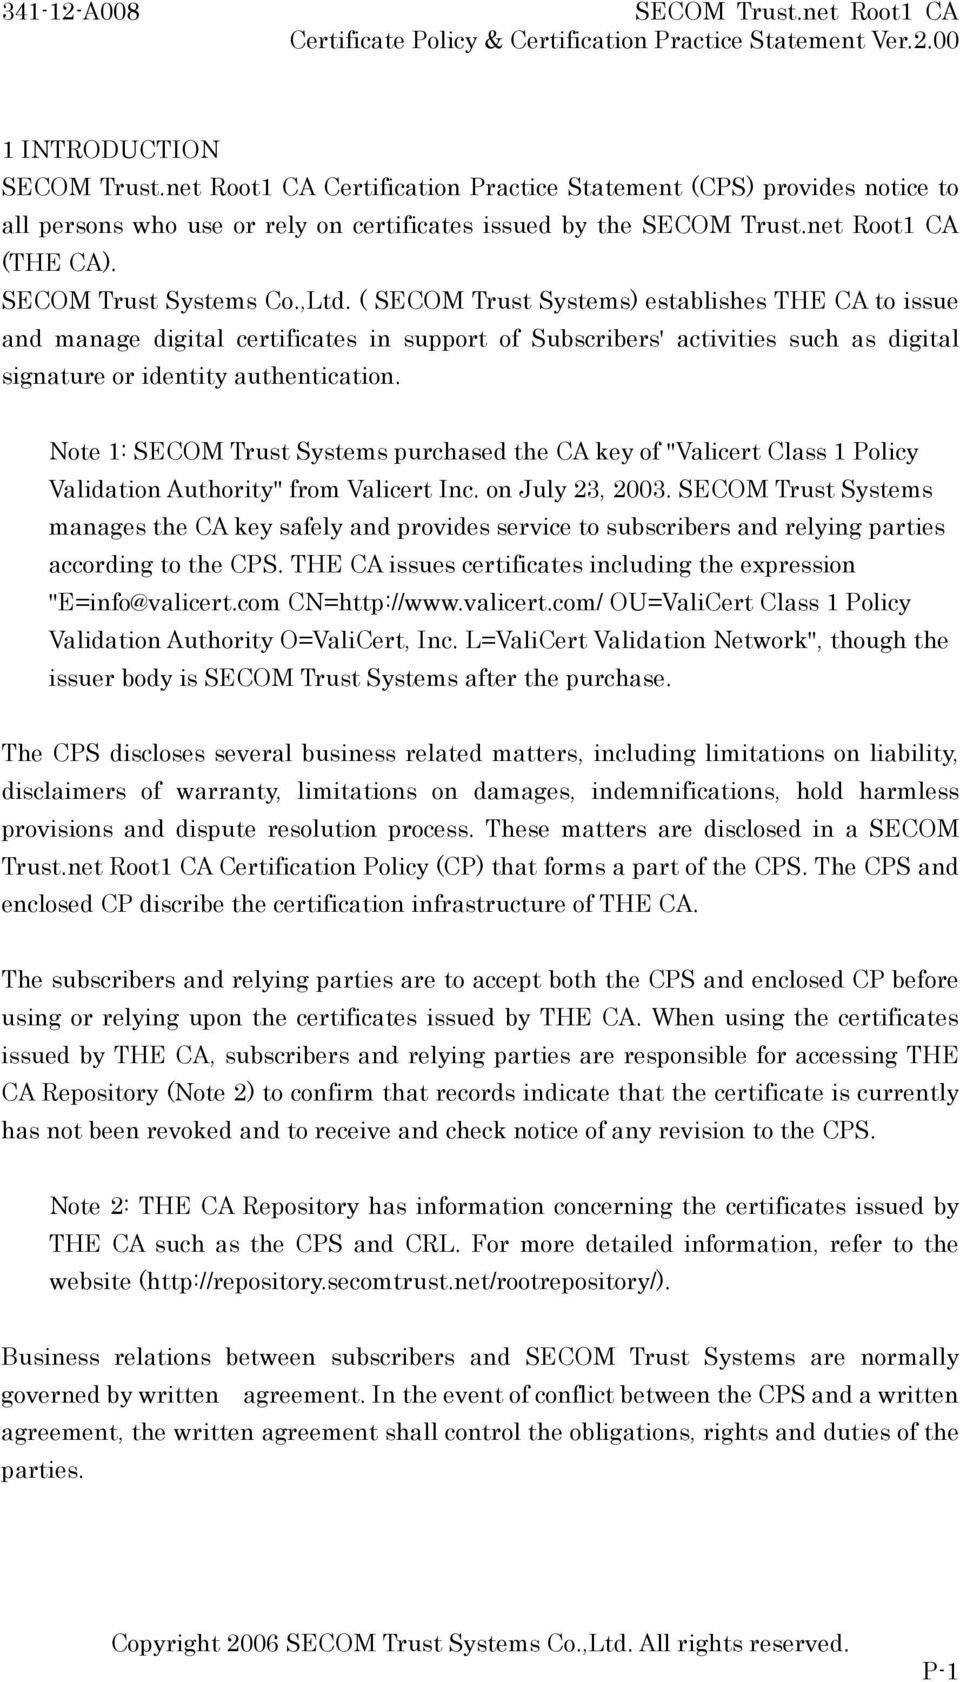 "Note 1: SECOM Trust Systems purchased the CA key of ""Valicert Class 1 Policy Validation Authority"" from Valicert Inc. on July 23, 2003."